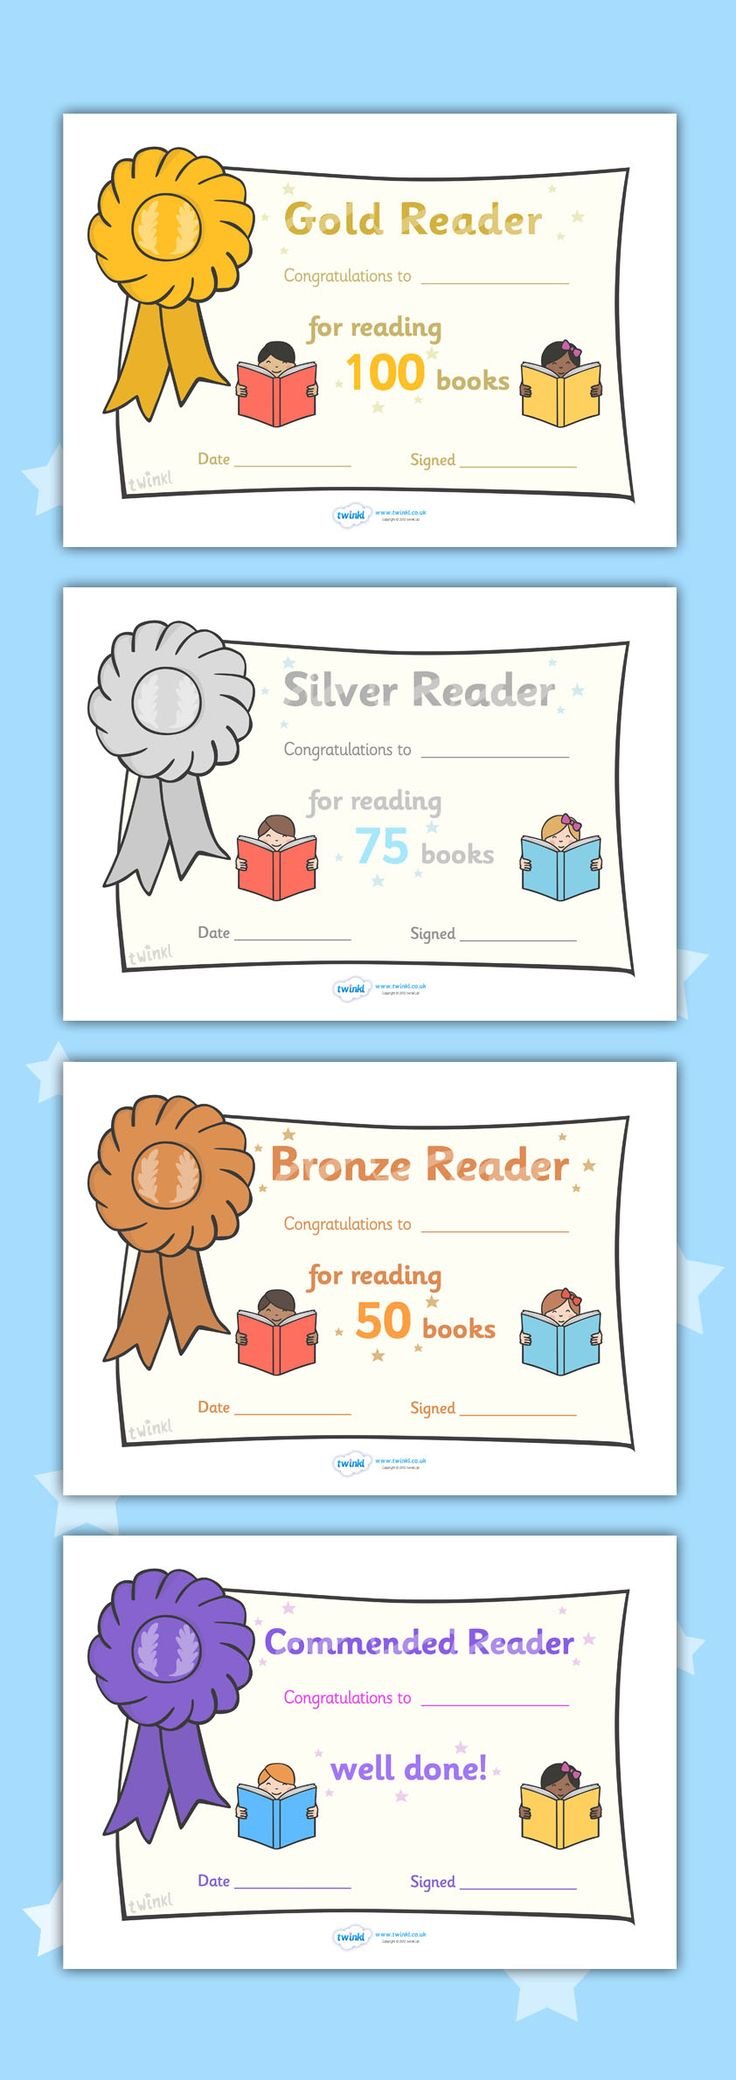 Twinkl Resources >> Editable Book Reading Certificates  >> Classroom printables for Pre-School, Kindergarten, Primary School and beyond! editable, printable, reading, home school, guided reading